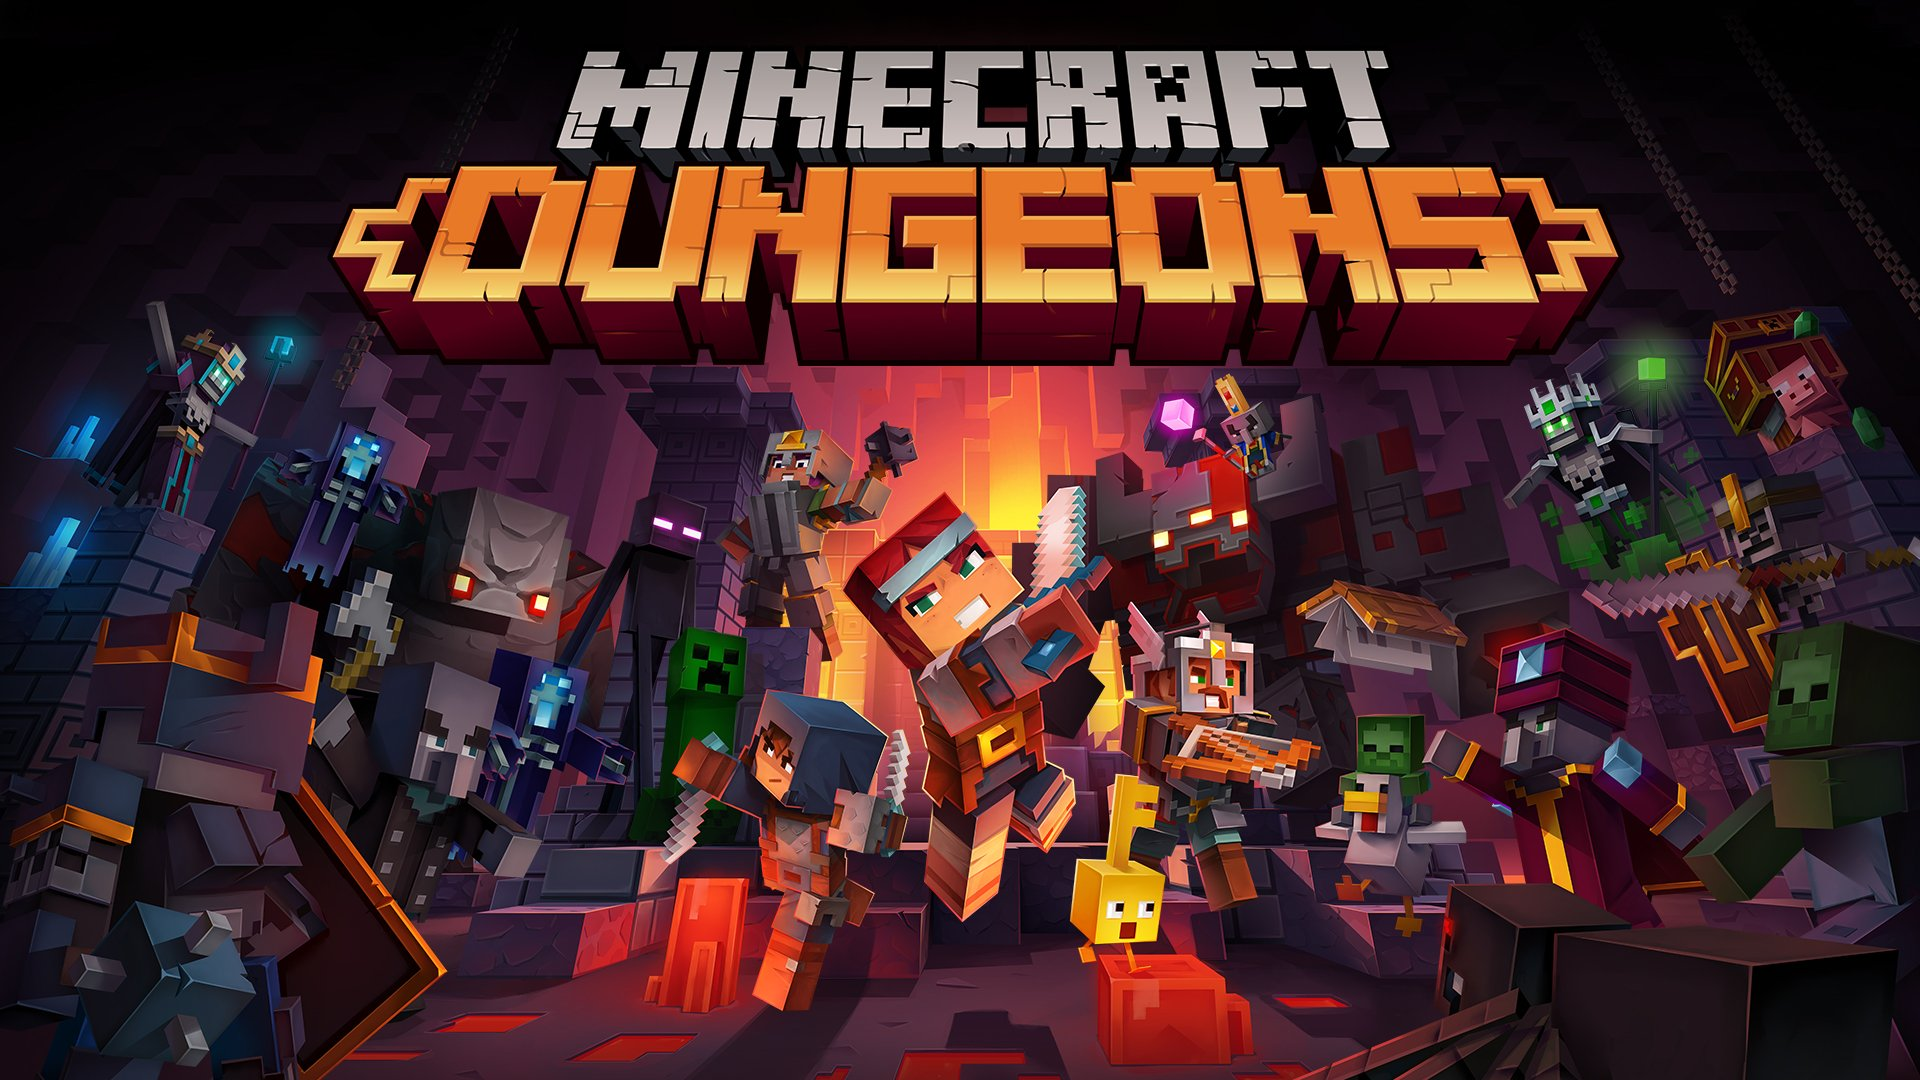 Minecraft Dungeons On Xbox Cloud Gaming Is Getting Touch Controls, Allowing Mobile Players To Play With Ease!